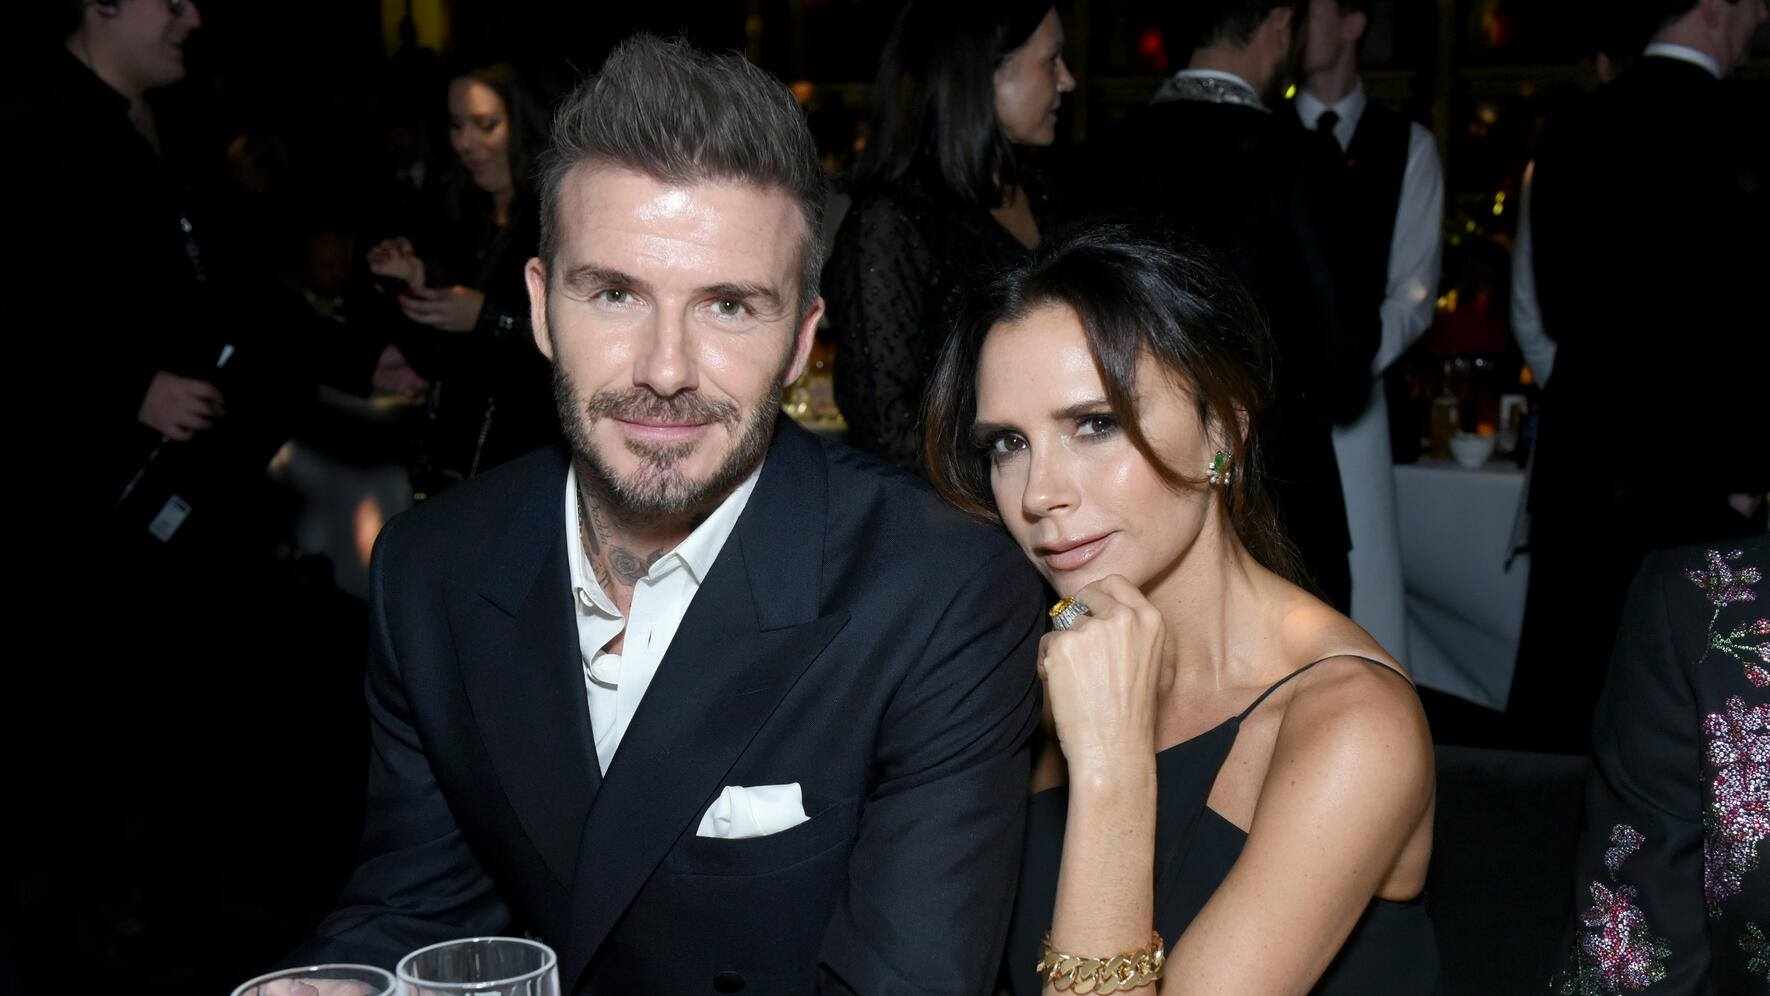 LONDON, ENGLAND - DECEMBER 10:  David Beckham and Victoria Beckham attend The Fashion Awards 2018 In Partnership With Swarovski at Royal Albert Hall on December 10, 2018 in London, England.  (Photo by Joe Maher/BFC/Getty Images)